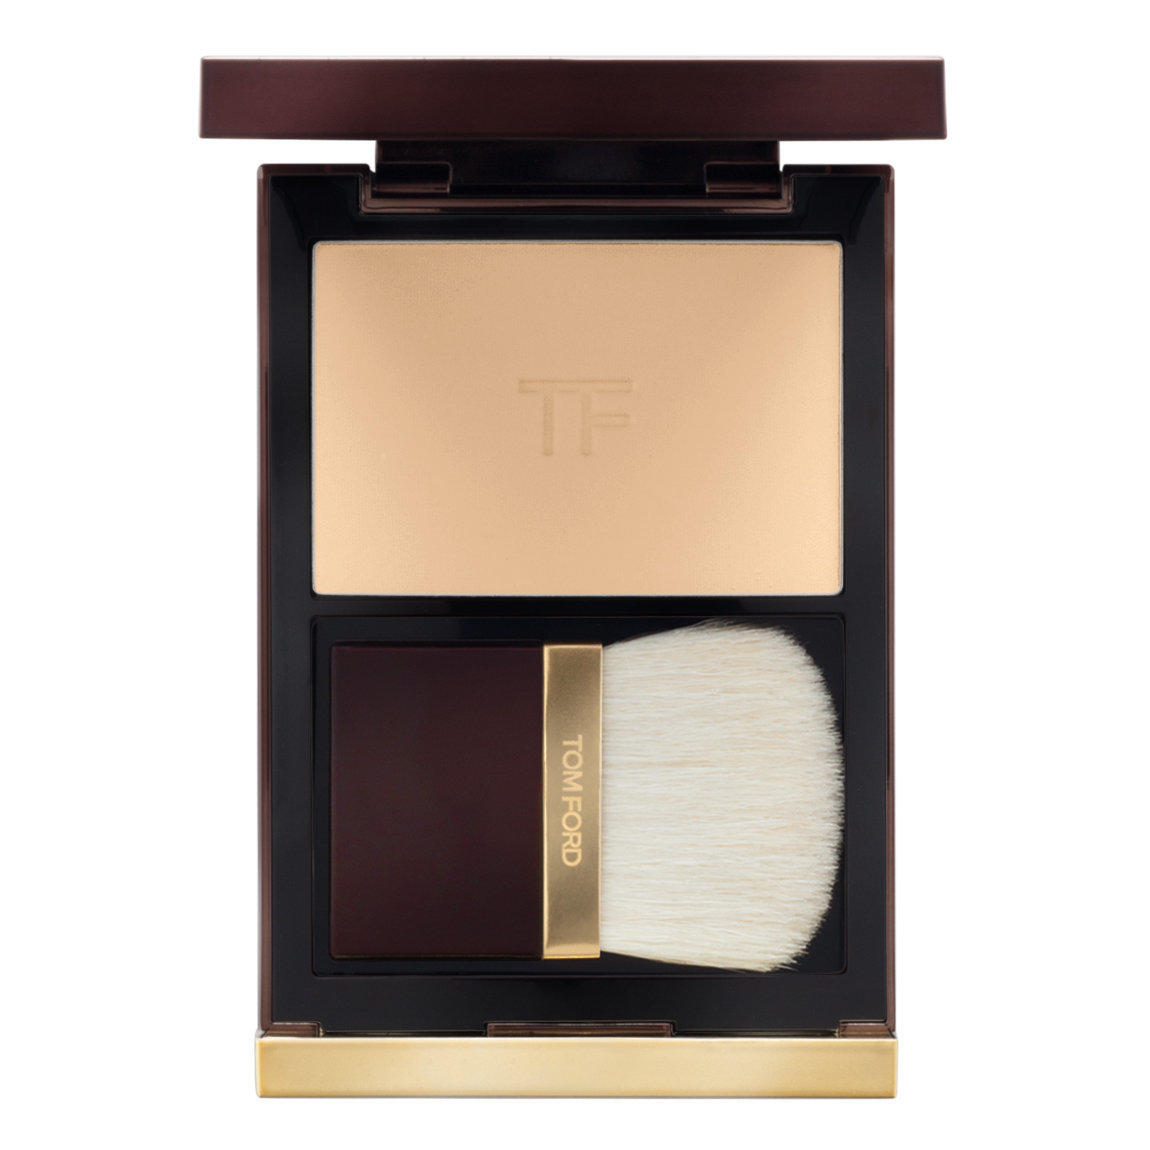 TOM FORD Illuminating Powder Translucent product swatch.